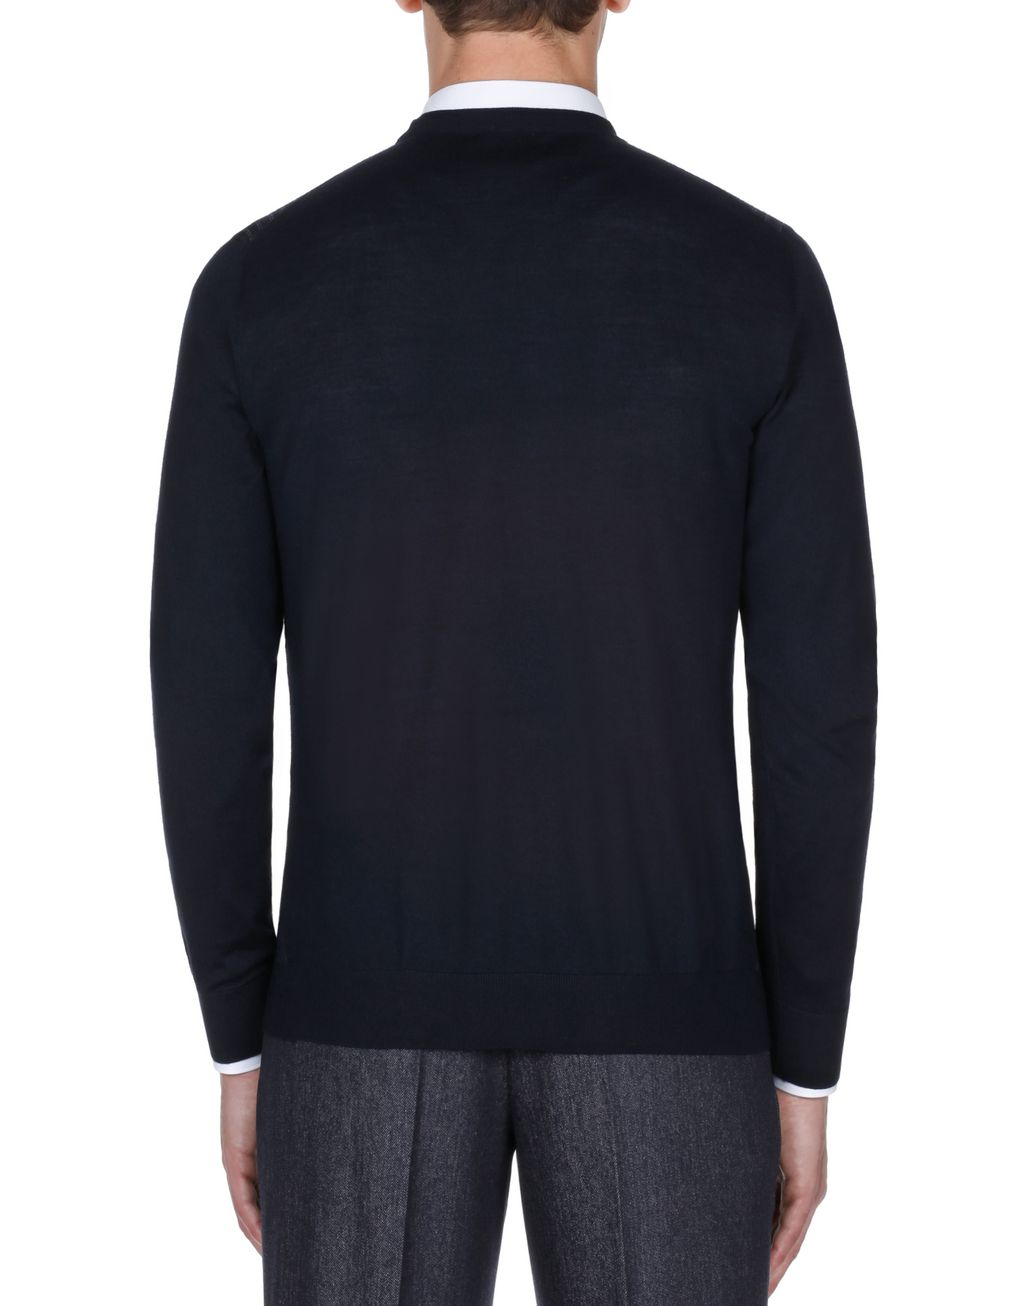 BRIONI Navy Blue Crew Neck Sweater Knitwear Man d